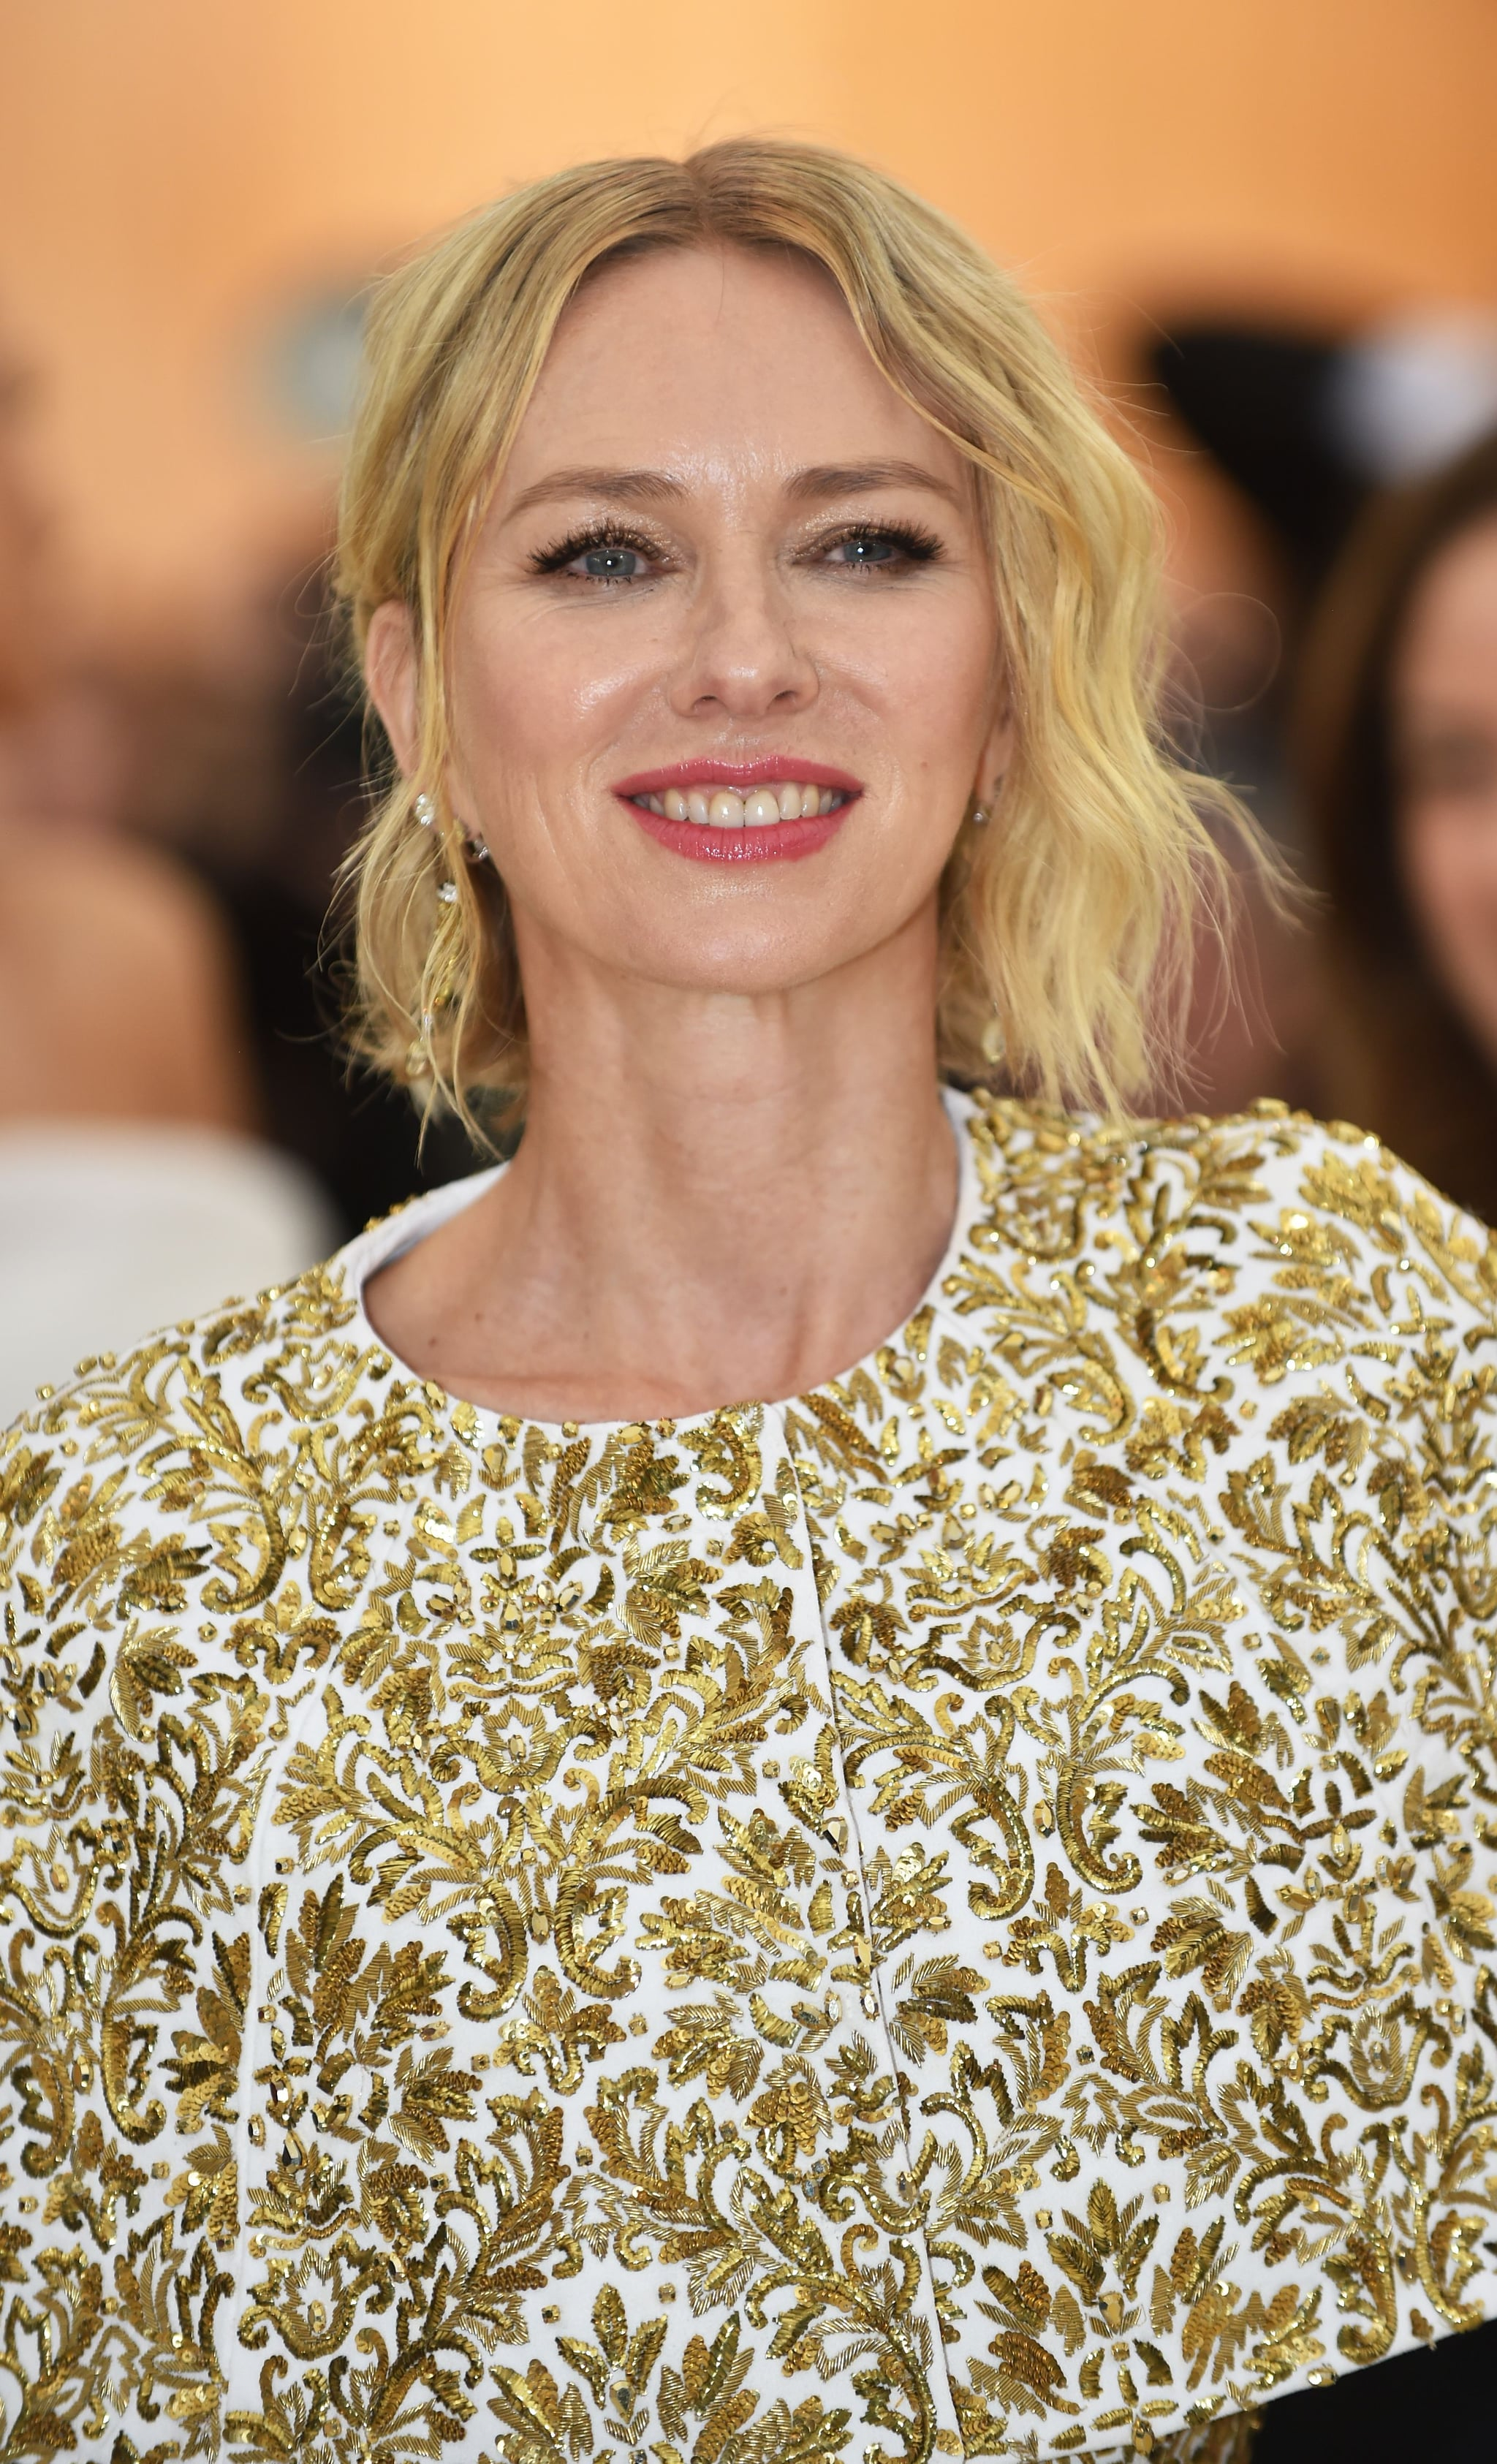 Naomi Watts arrives for the 2018 Met Gala on May 7, 2018 at the Metropolitan Museum of Art in New York. - The Gala raises money for the Metropolitan Museum of Arts Costume Institute. The Gala's 2018 theme is Heavenly Bodies: Fashion and the Catholic Imagination. (Photo by Hector RETAMAL / AFP)        (Photo credit should read HECTOR RETAMAL/AFP/Getty Images)